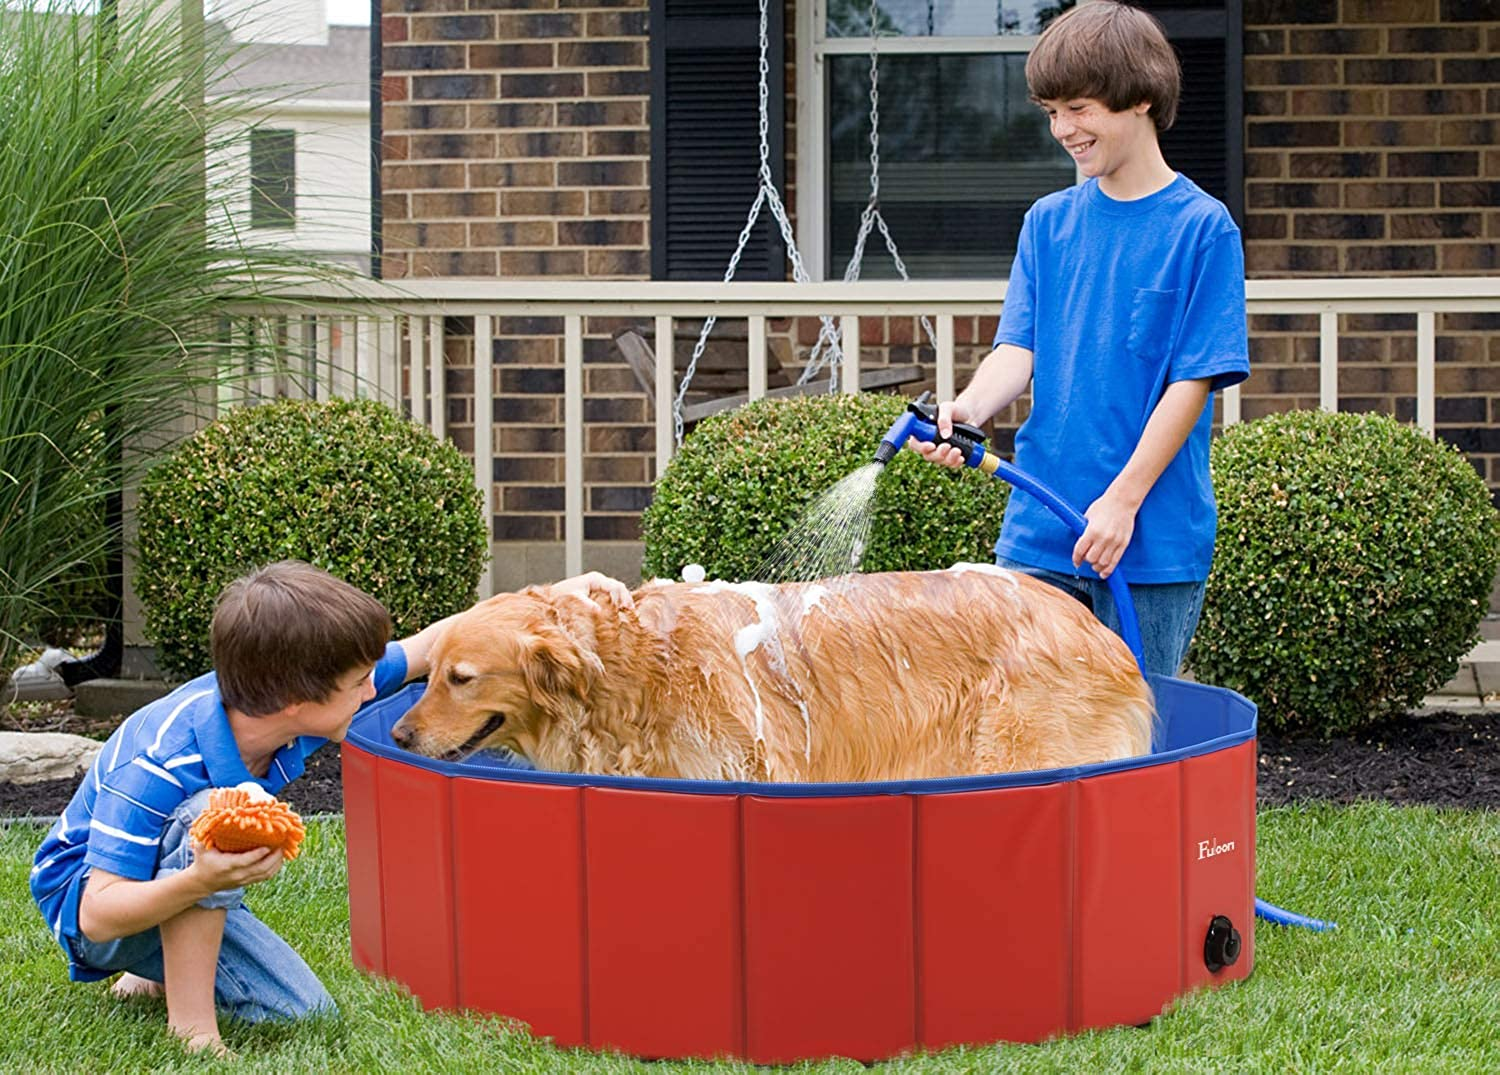 Fuloon Foldable Pet Swimming Pool Dogs Cats Paddling Pool Puppy Bathing Tub (L  39.4inch(Dia) x 11inch(H))